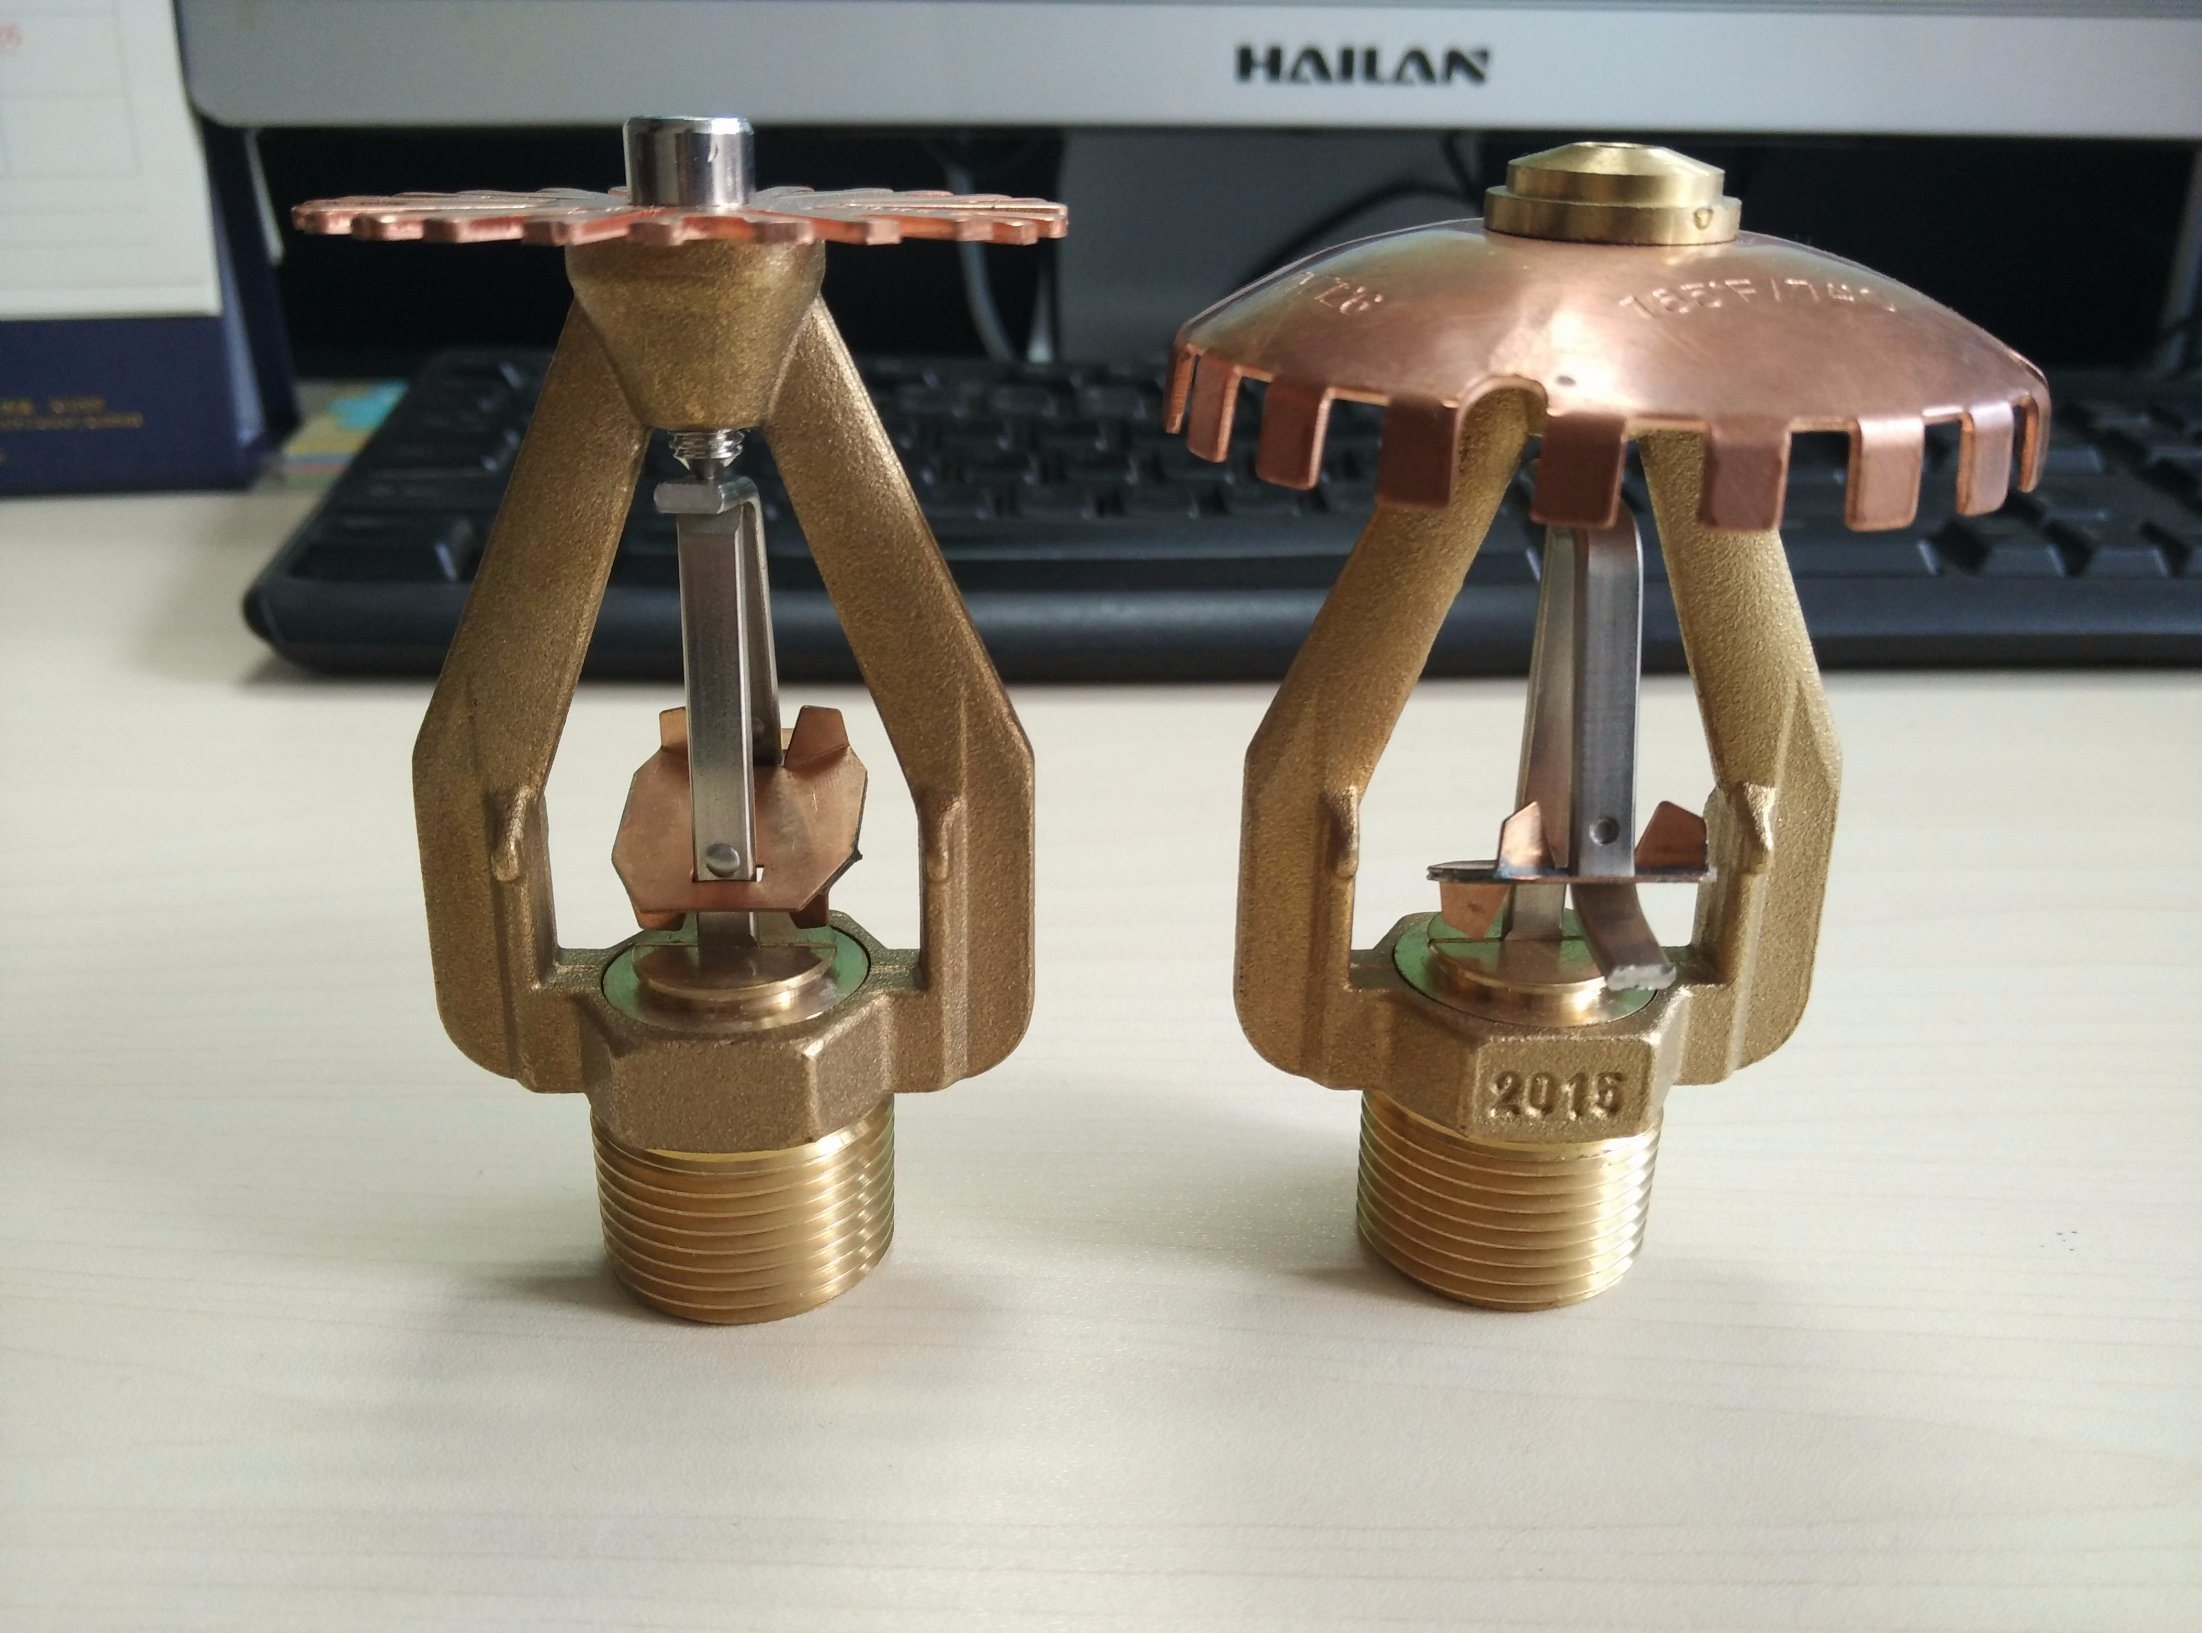 [Hot Item] Esfr (Early Suppression Fast Response Fire Sprinkler Systems)